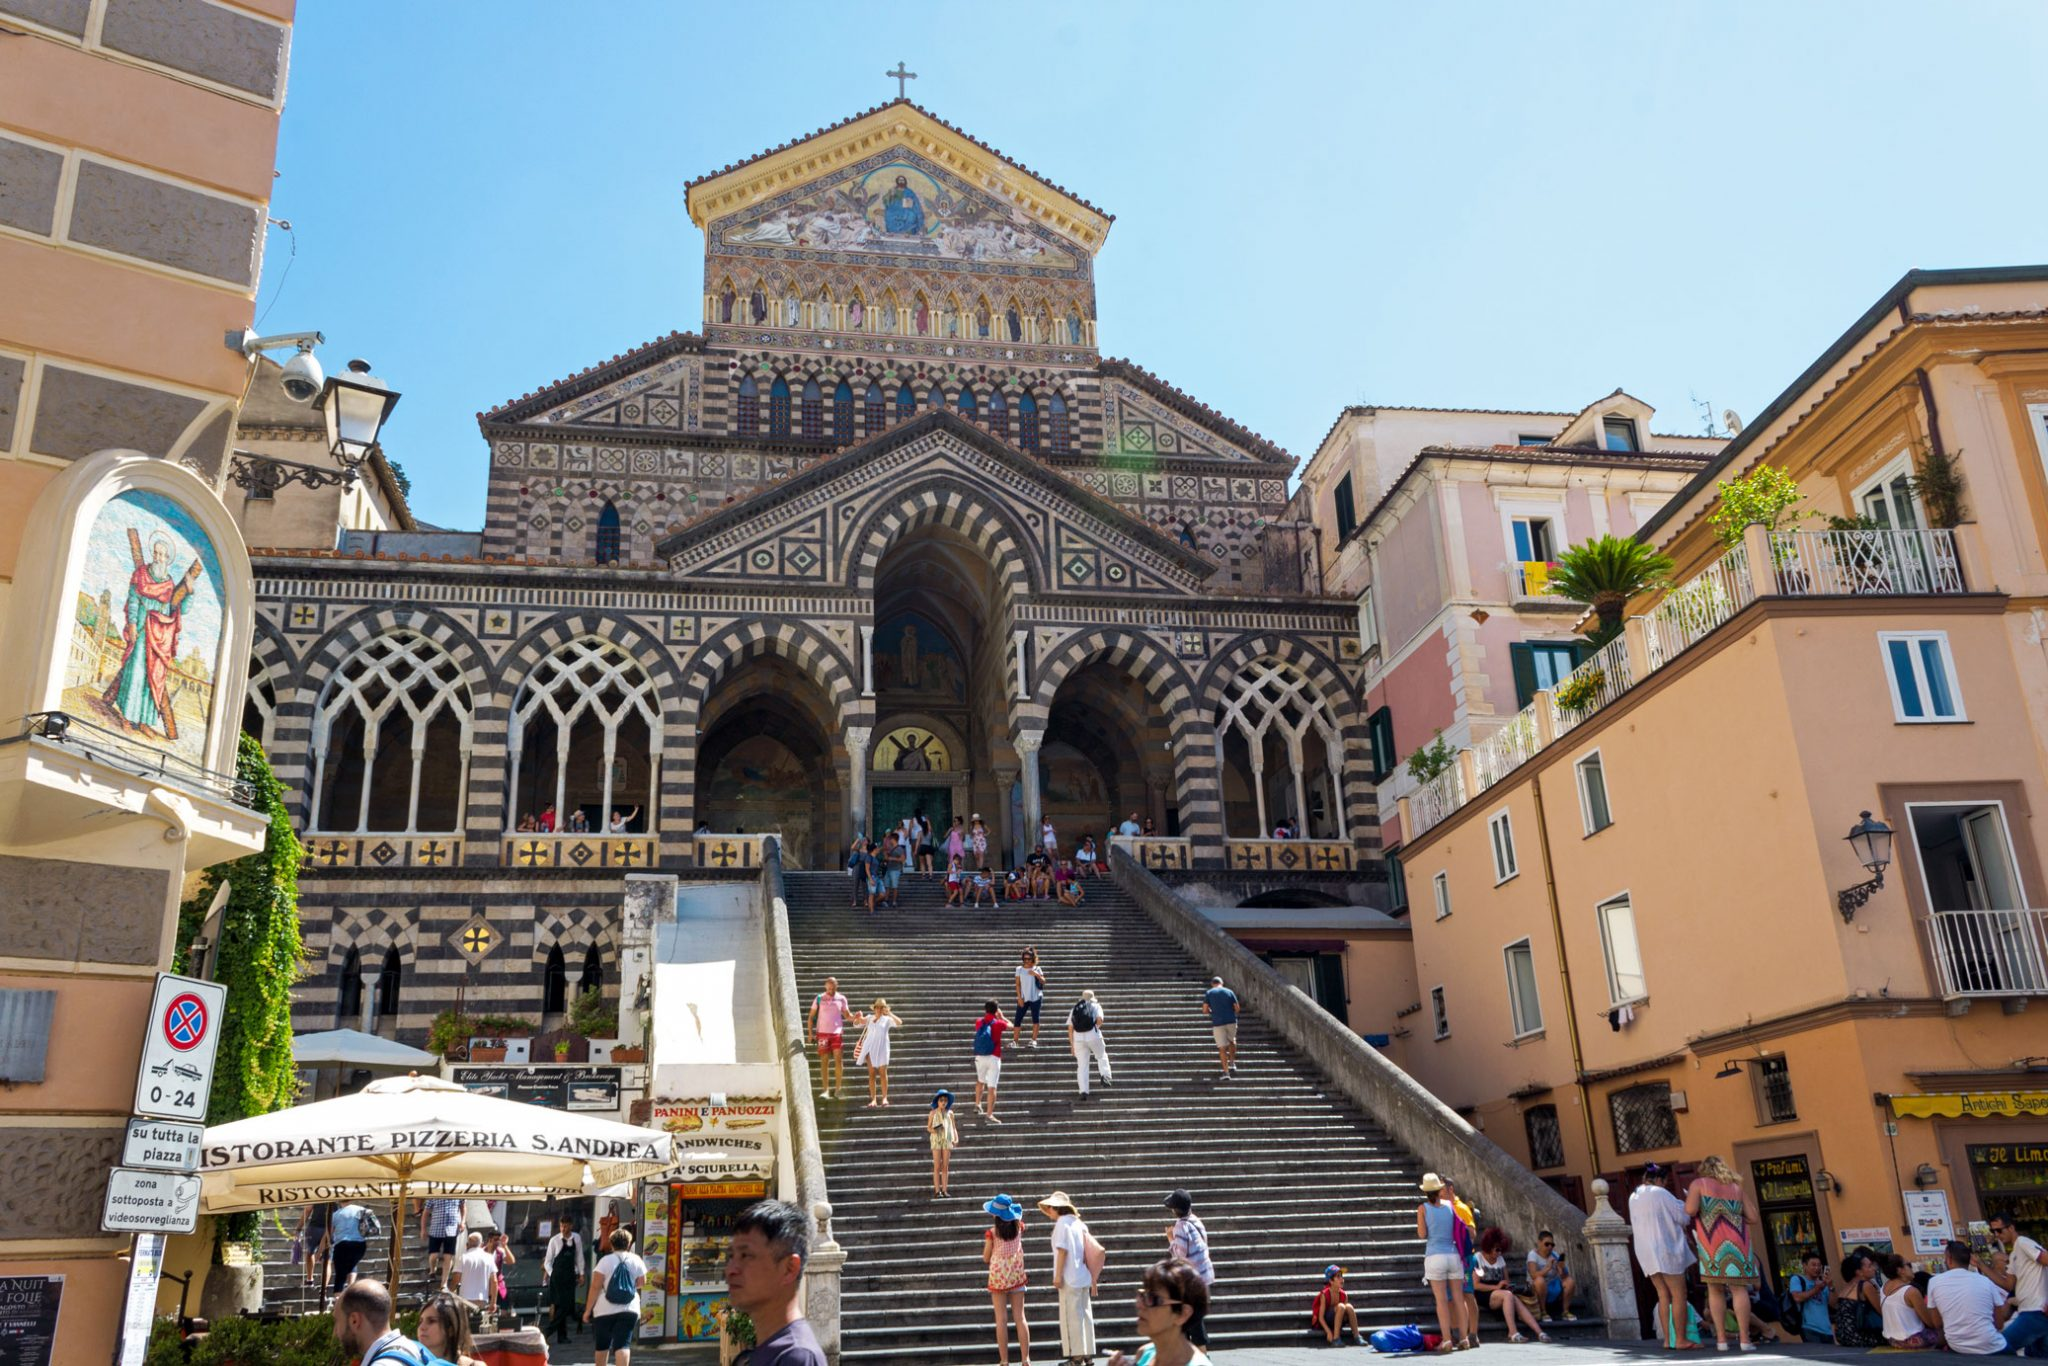 amalfi coast 5 days itinerary what to do guide